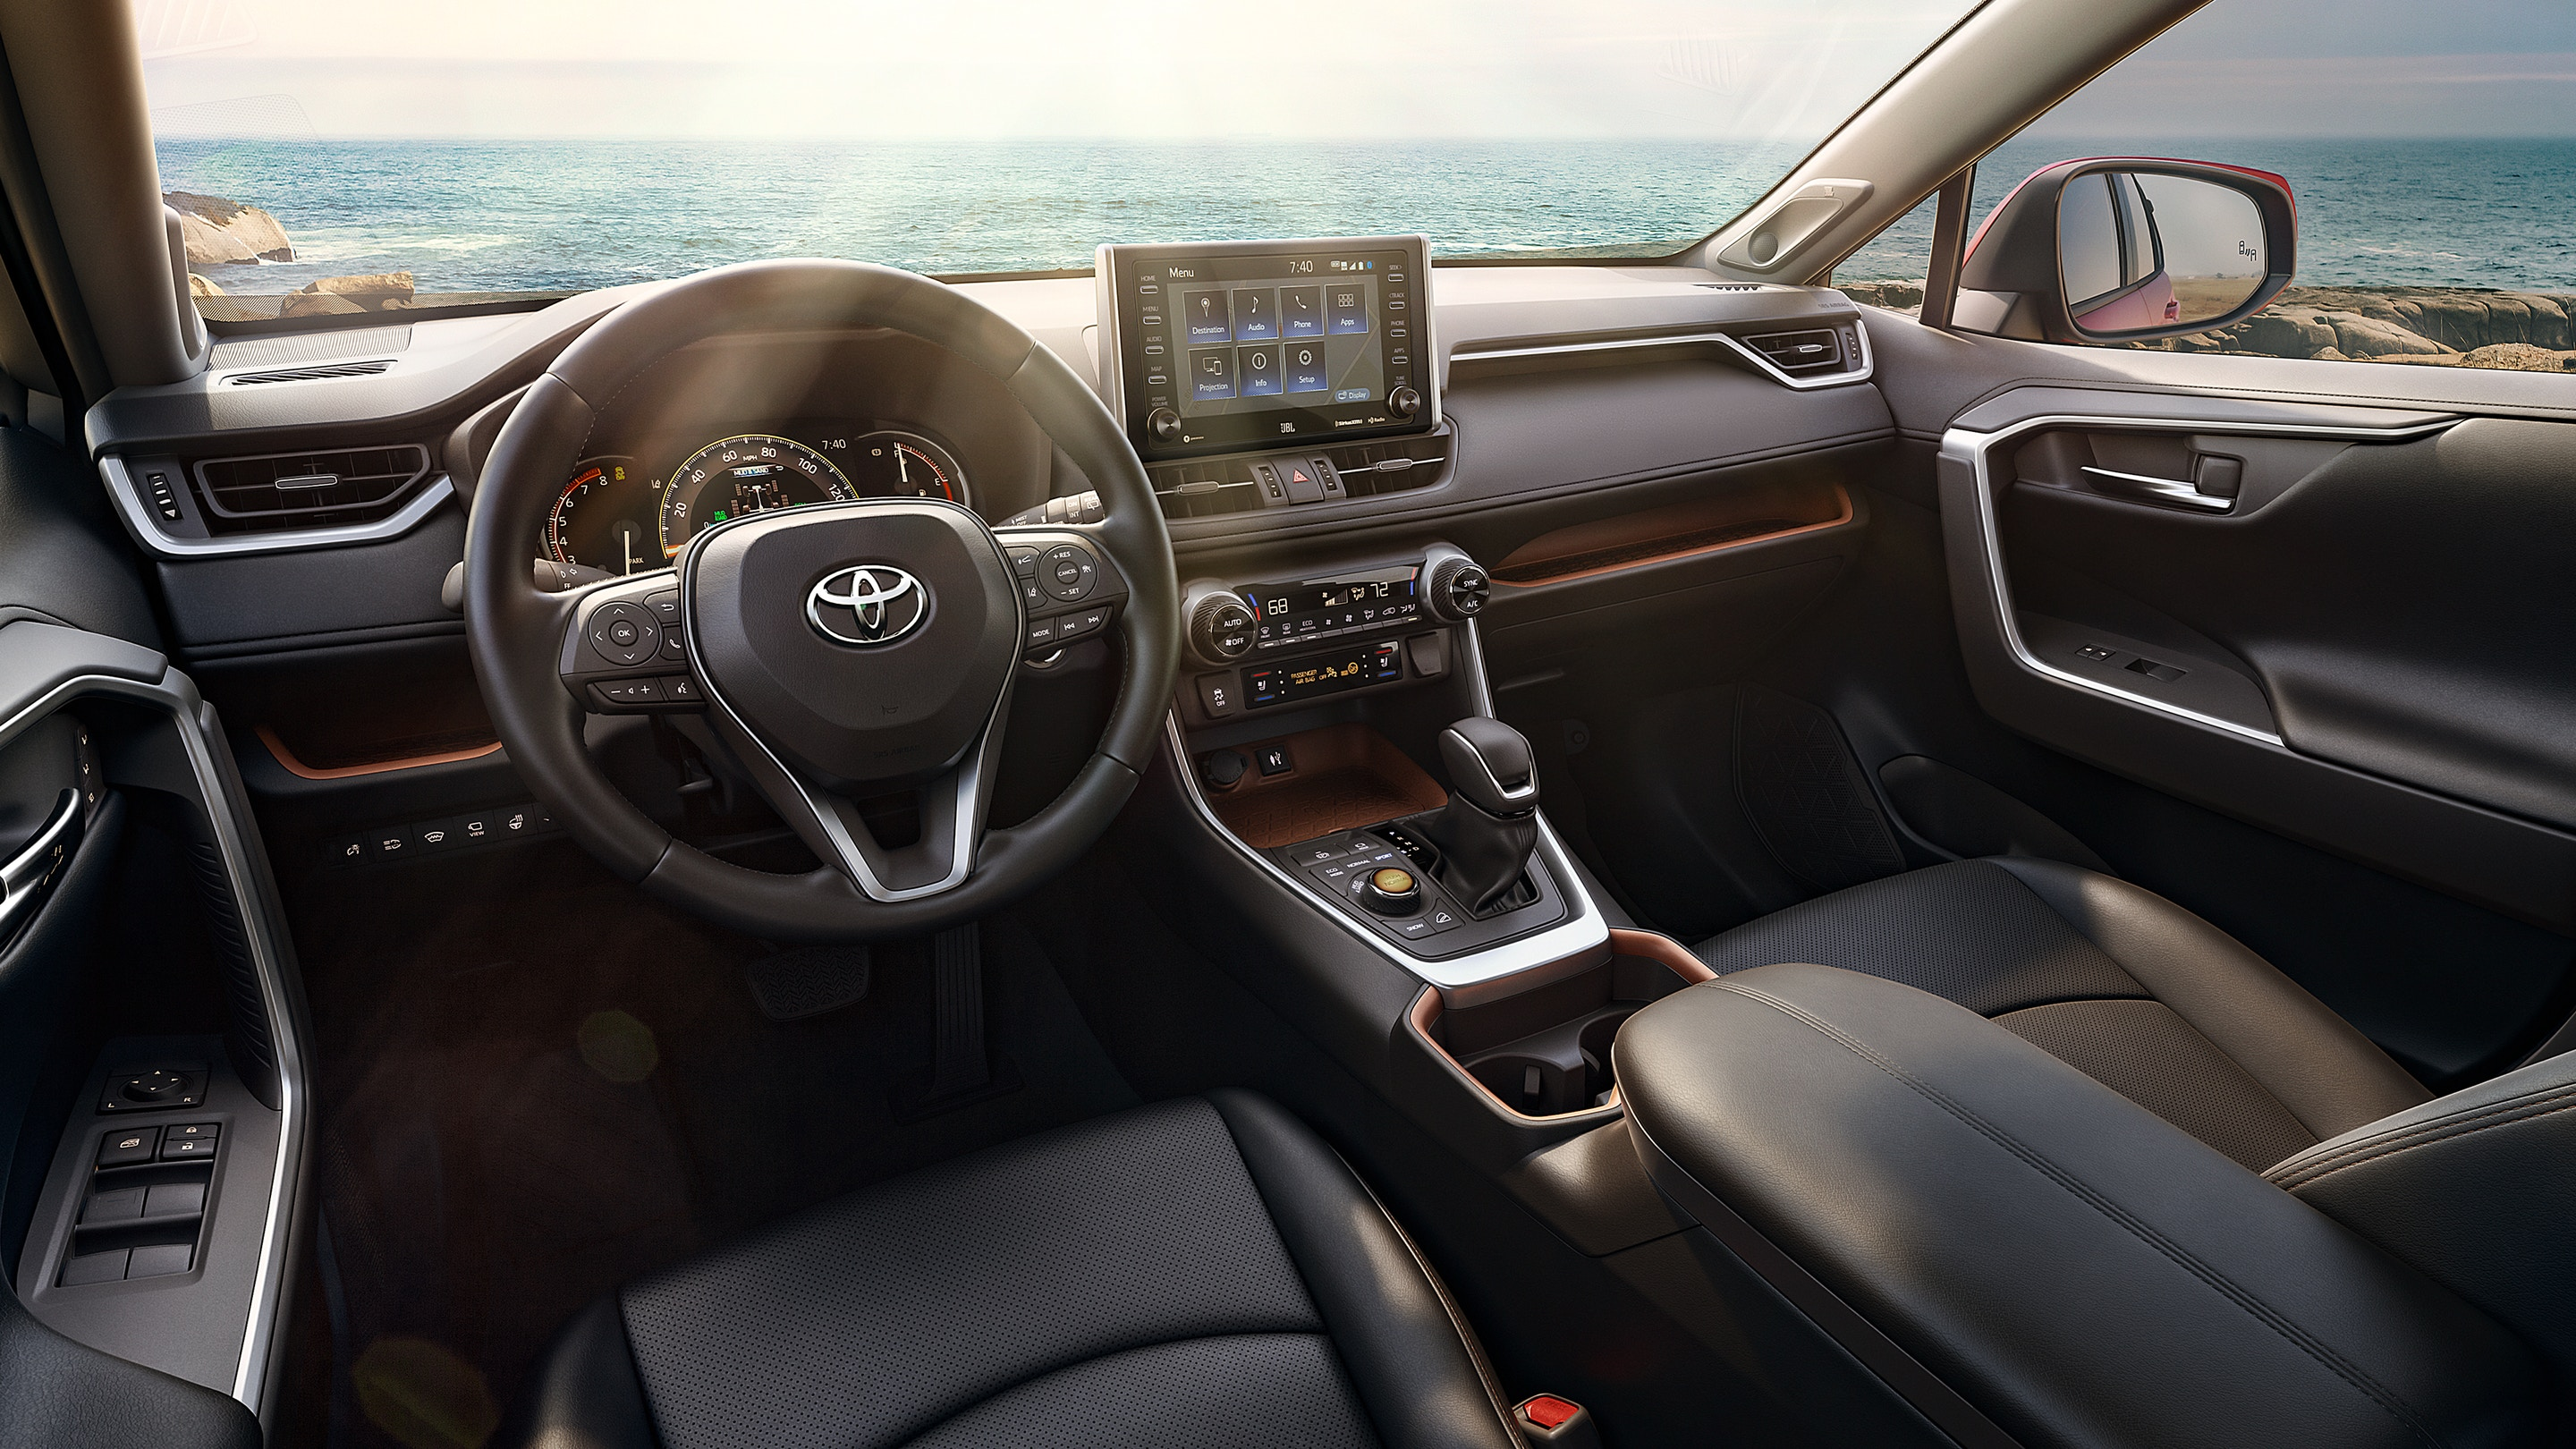 2019 RAV4 Dashboard